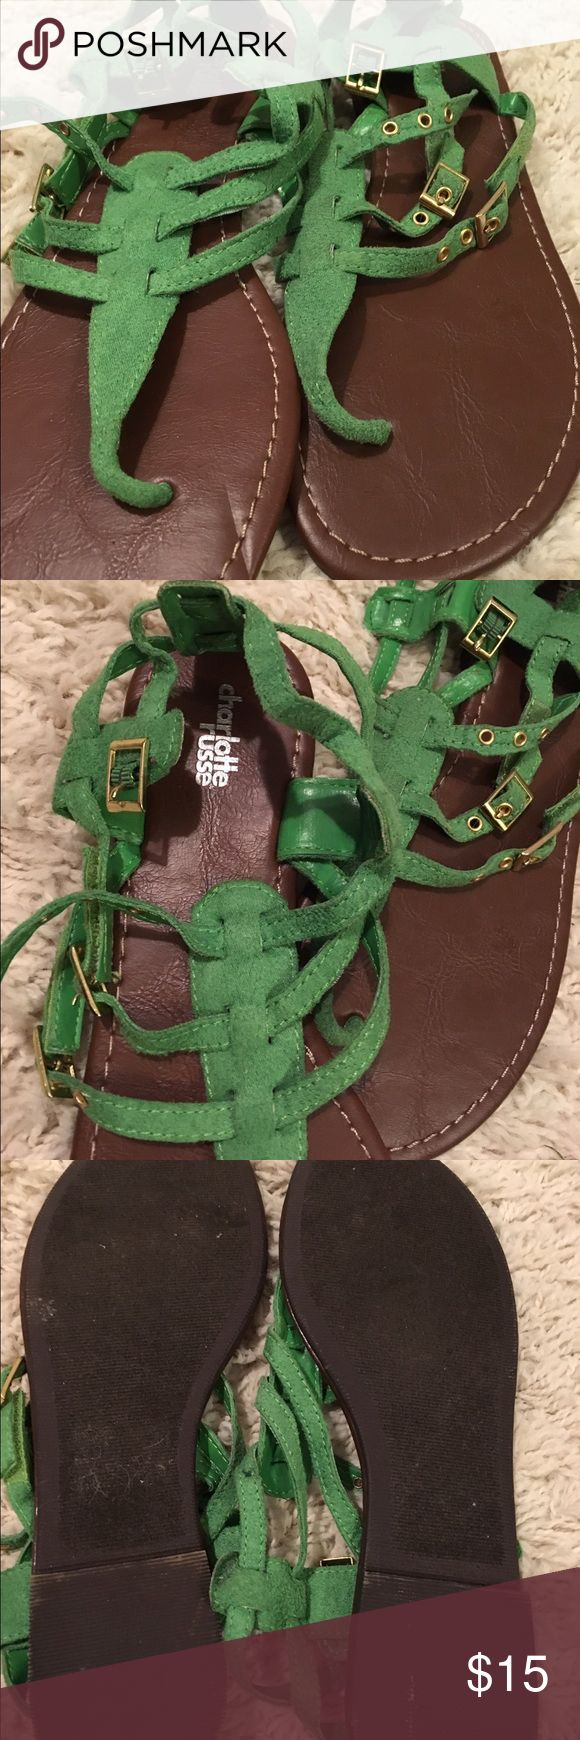 Green sandals Kelly green Charlotte Russe sandals Charlotte Russe Shoes Sandals